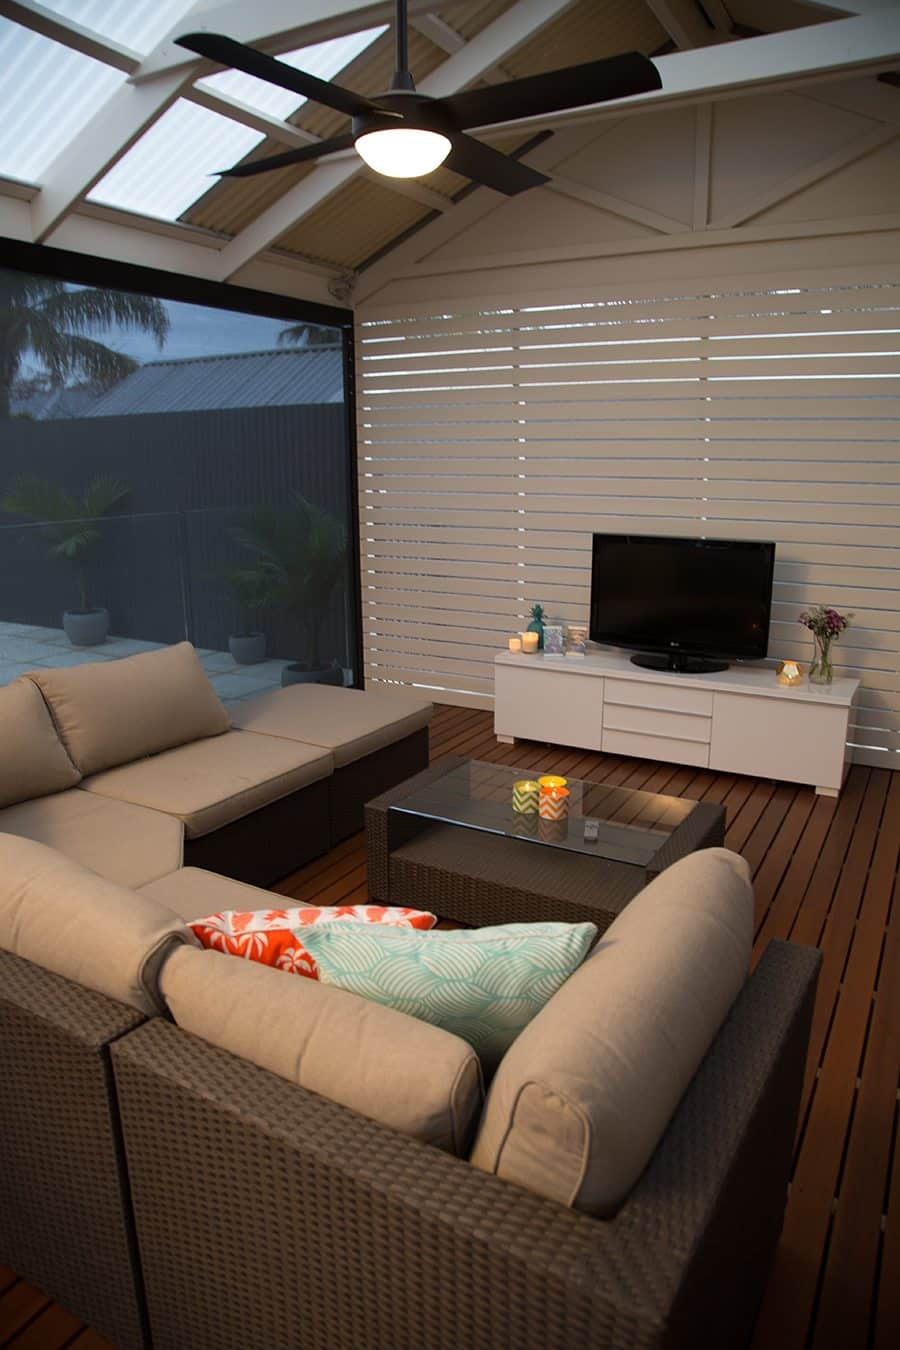 AOL-Indoor-Room-Pergola-Decking-Outdoor-Blinds-2017